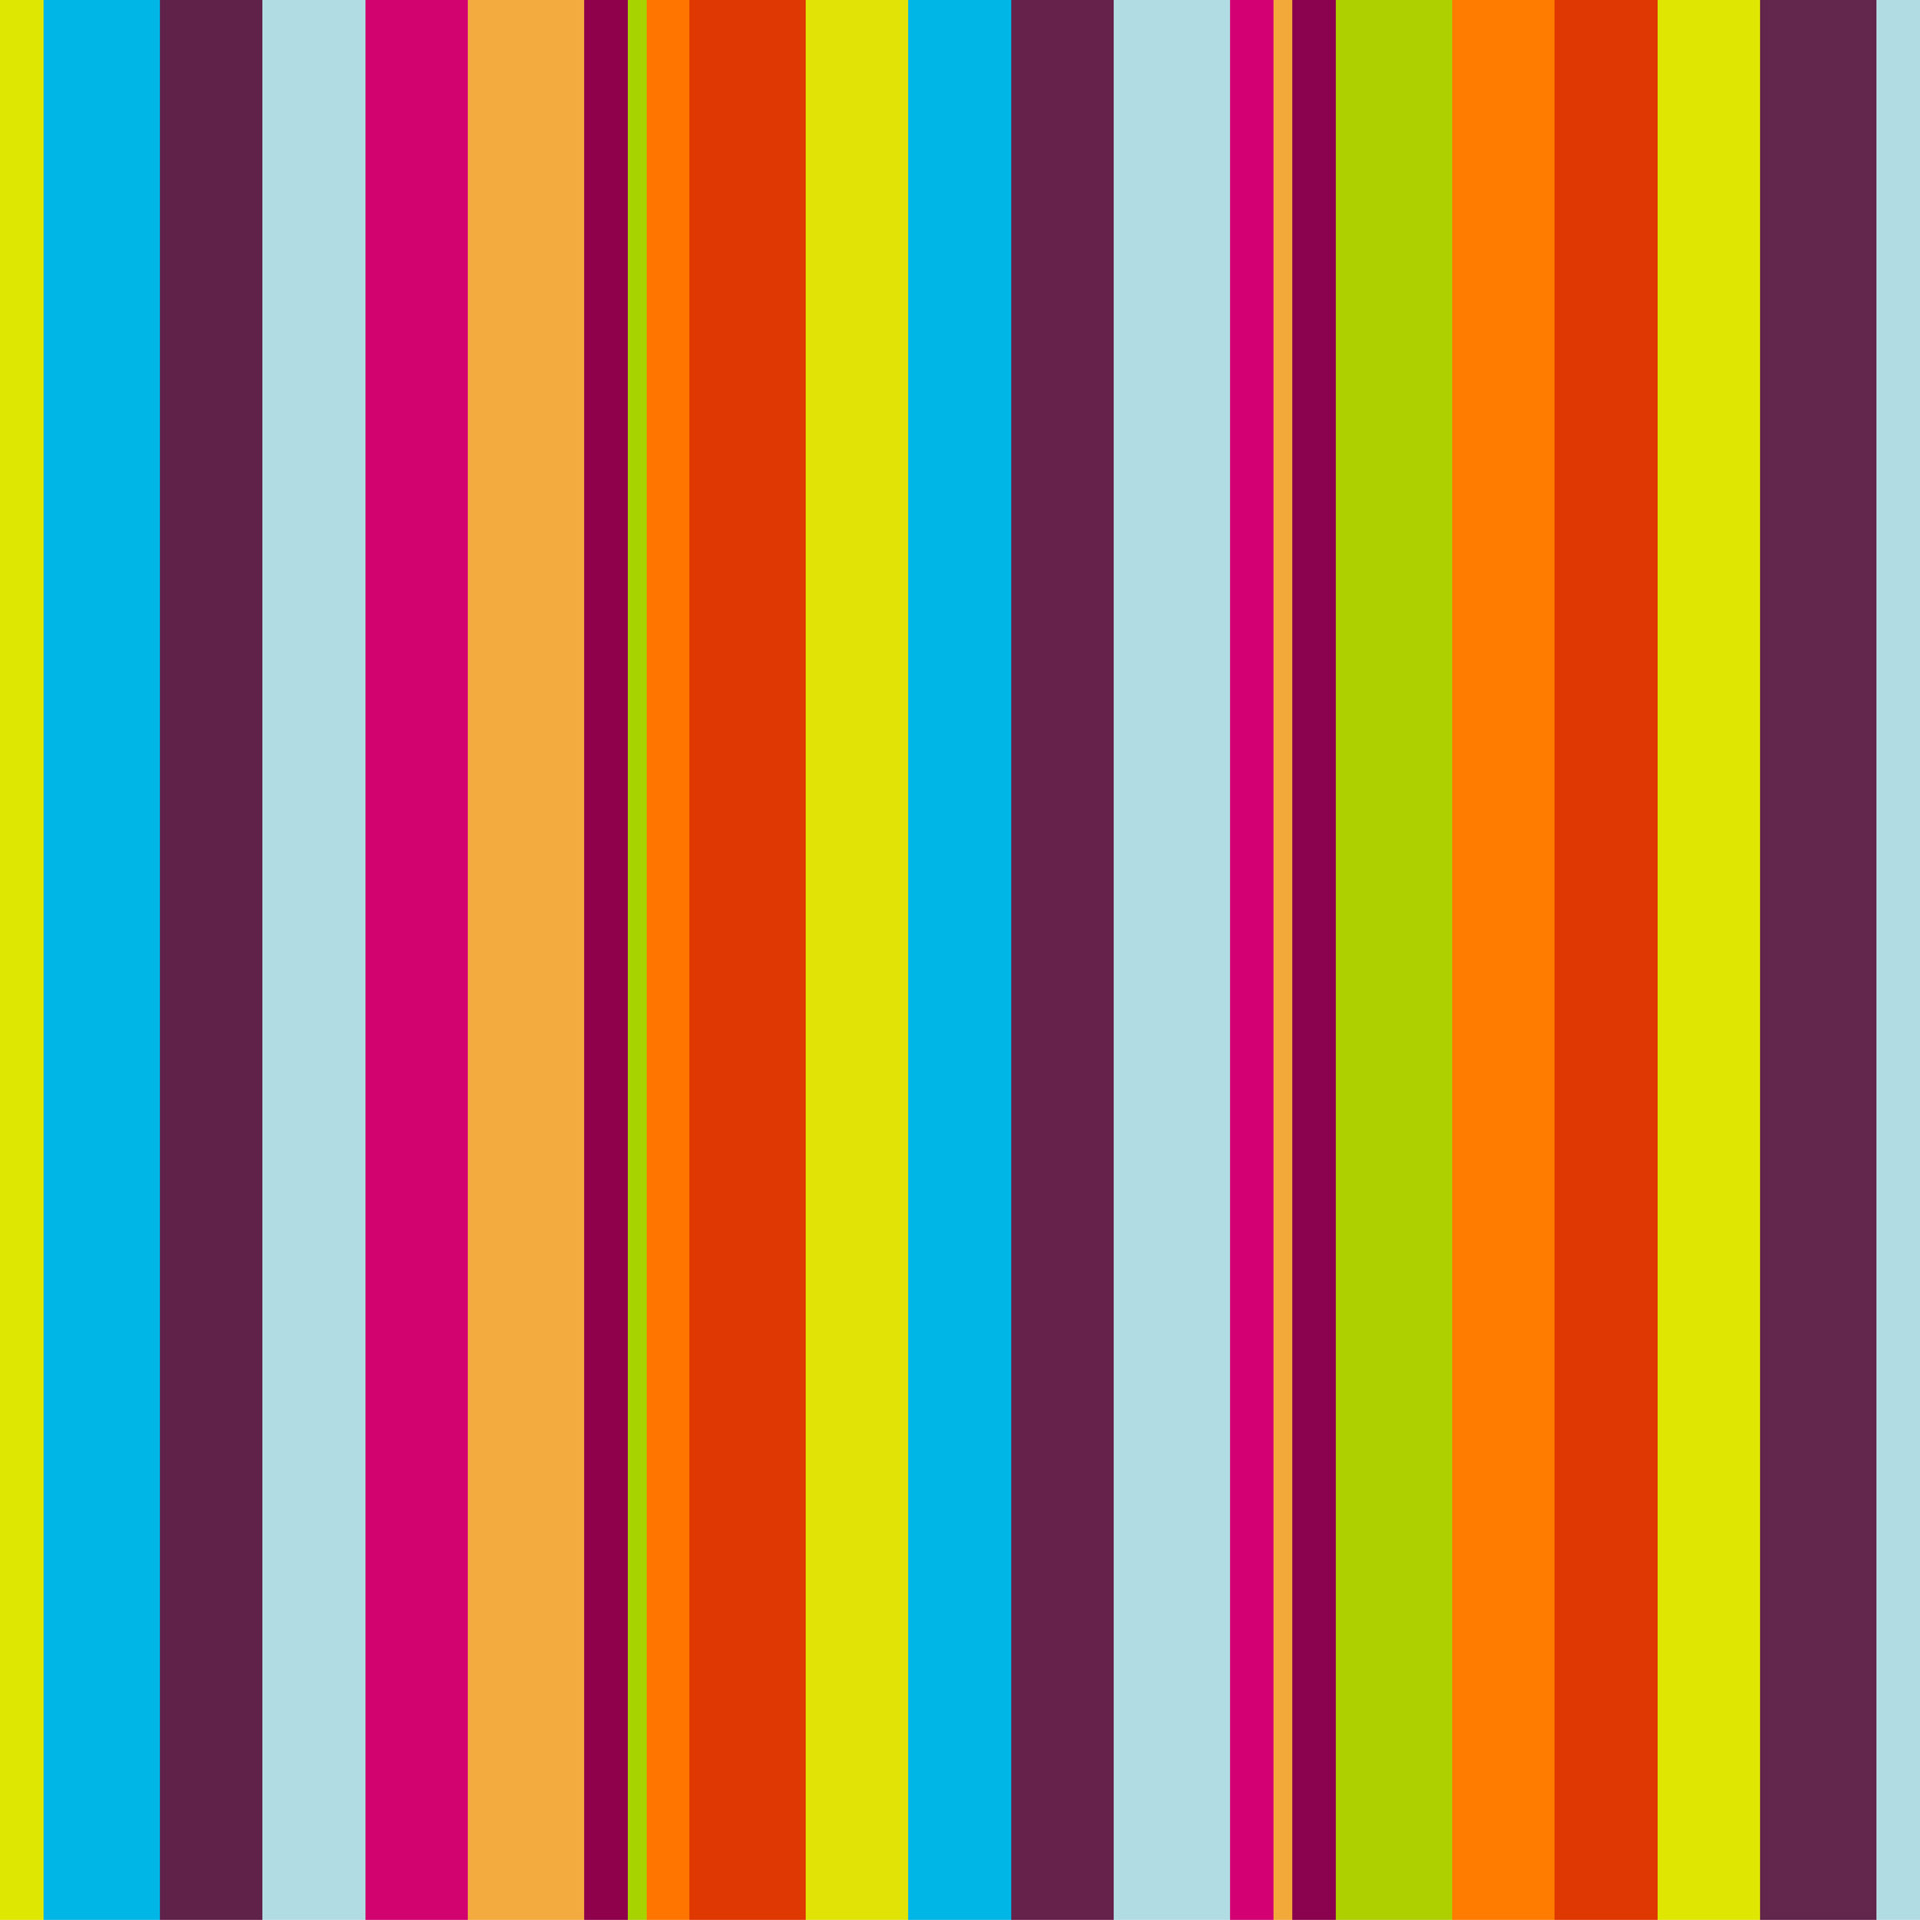 Stripes Background Colorful Free Stock Photo - Public Domain Pictures